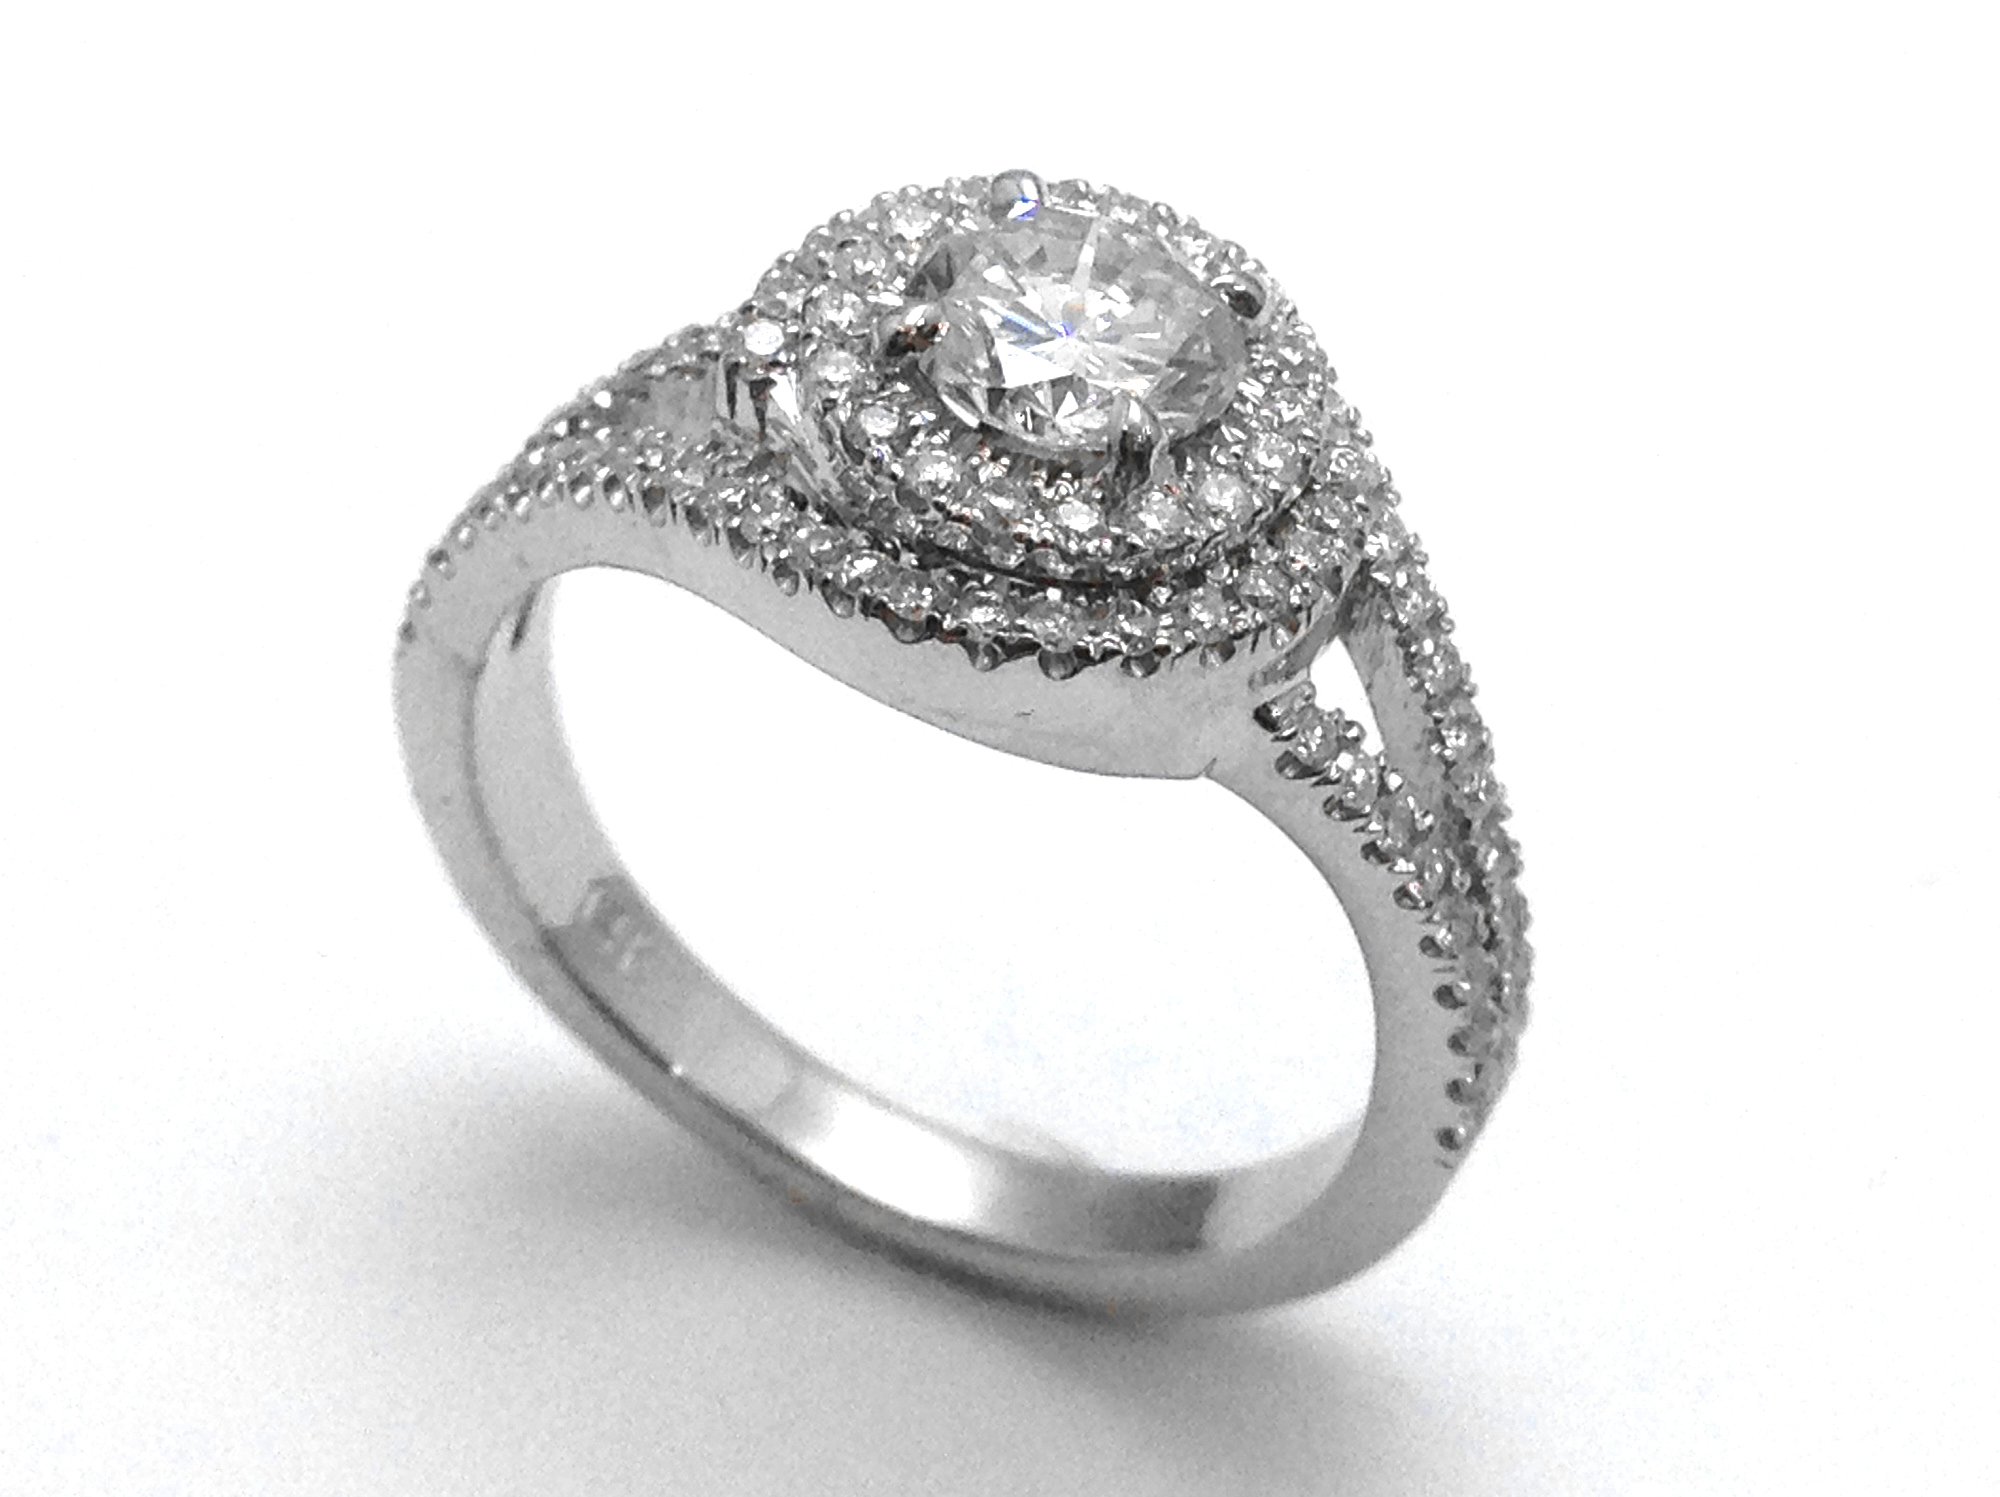 Double Swirl Diamond Engagement Ring in 14K White Gold